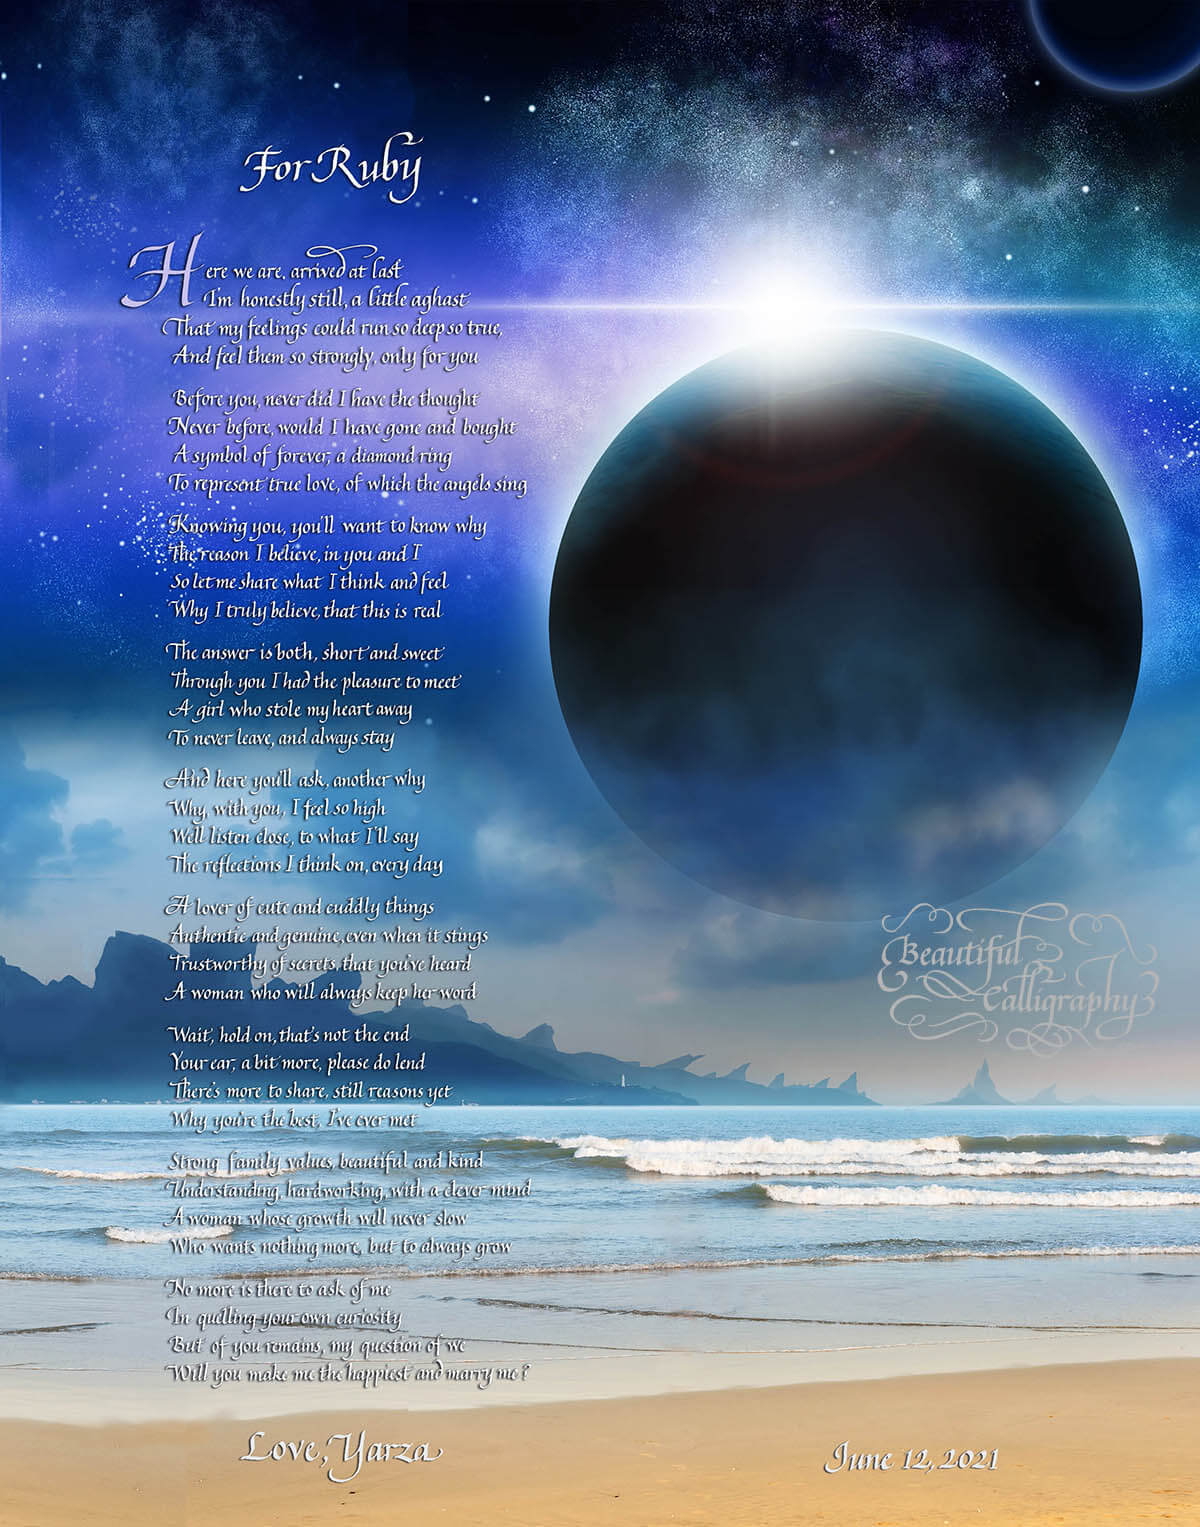 Unusual marriage proposal poem background of beach and large planet